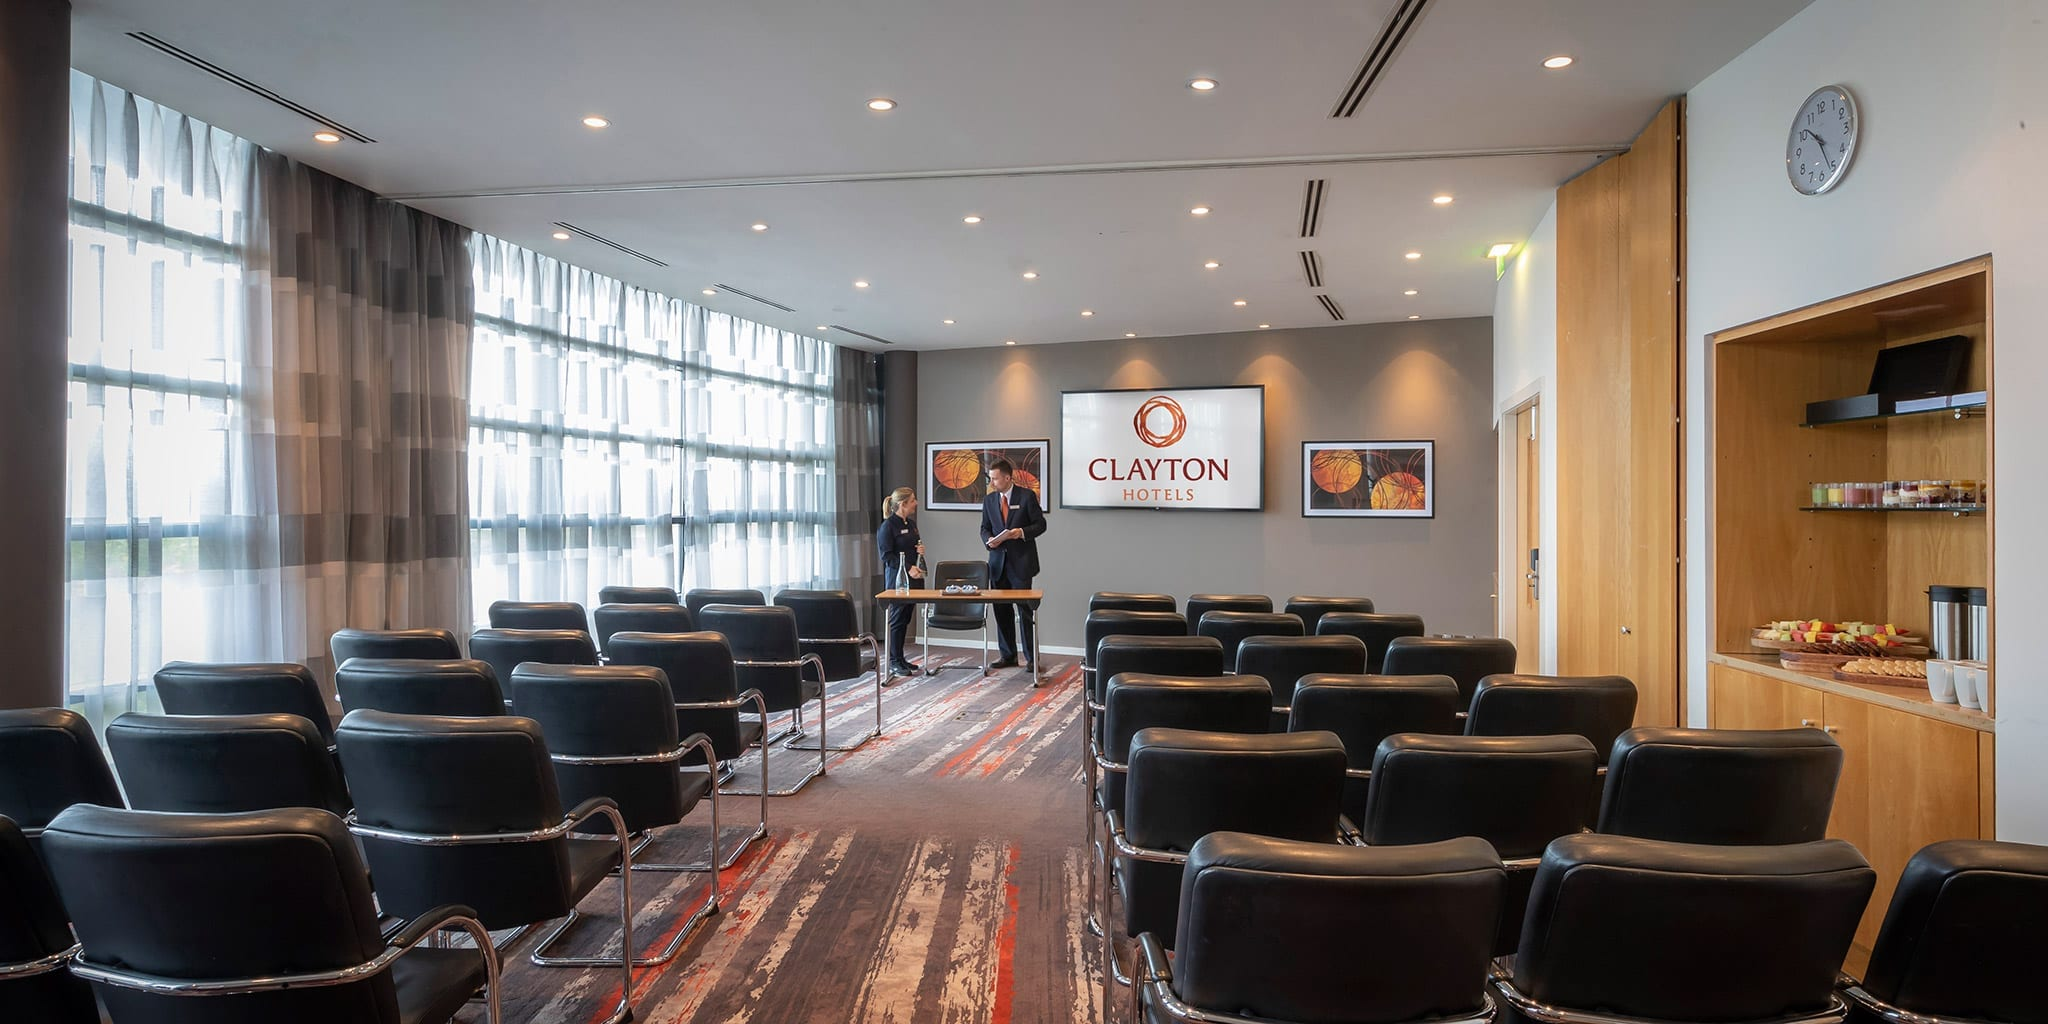 Meeting room at Clayton Hotel Liffey Valley, Dublin